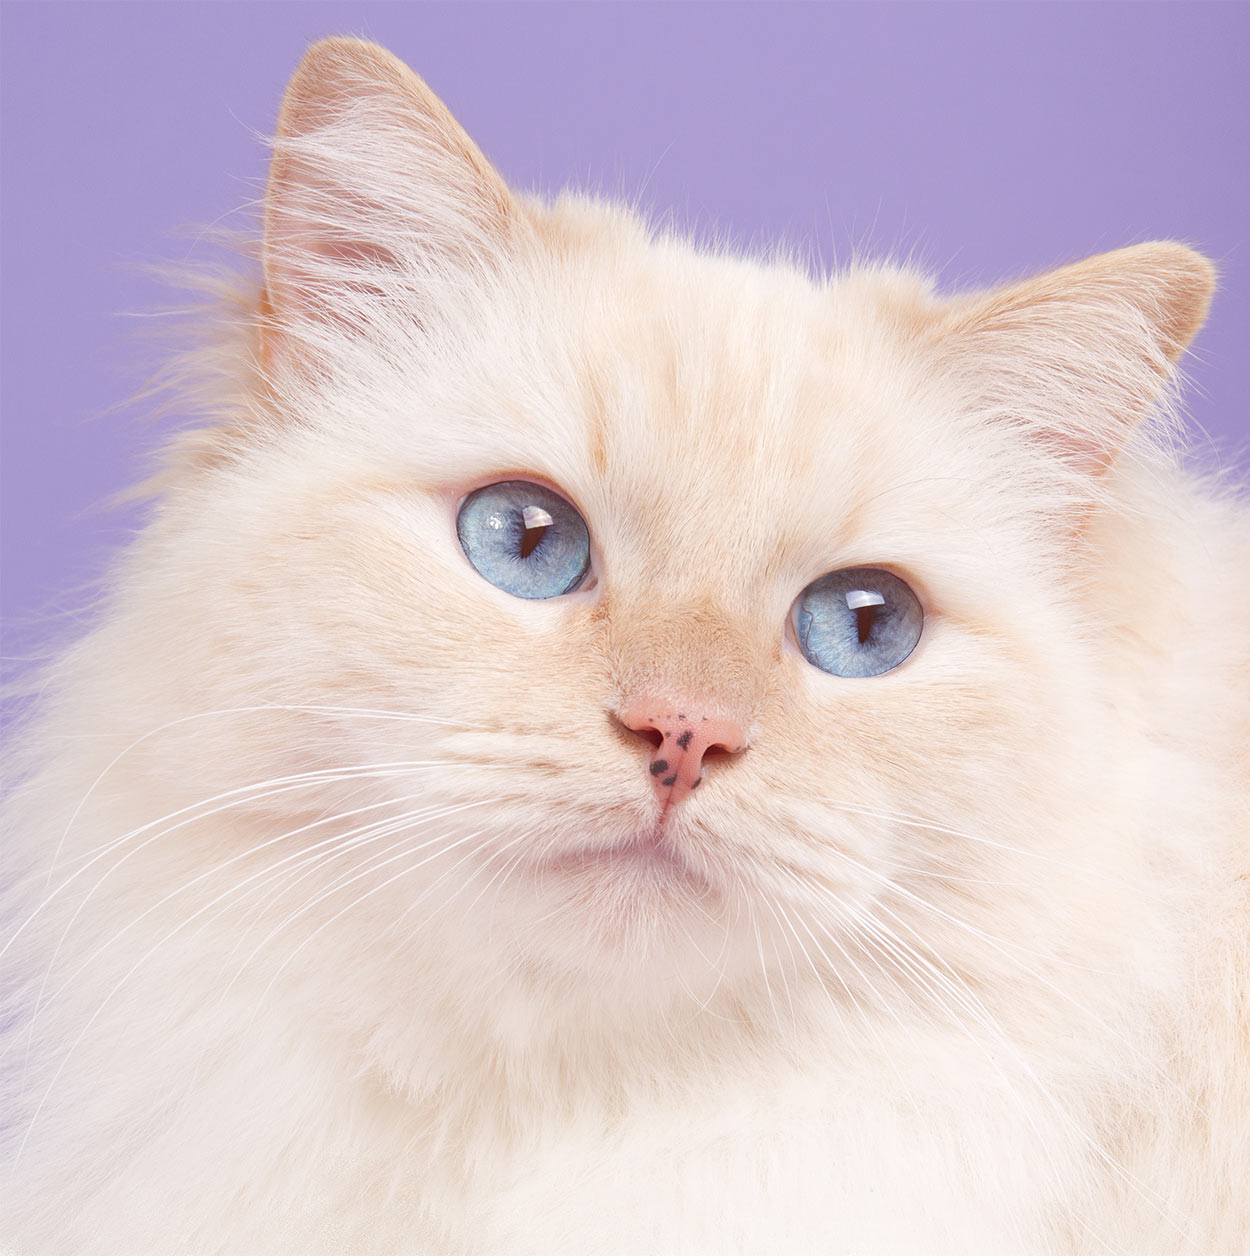 230 Ragdoll Cat Names - Great Ideas For Naming Your Ragdoll Kitten